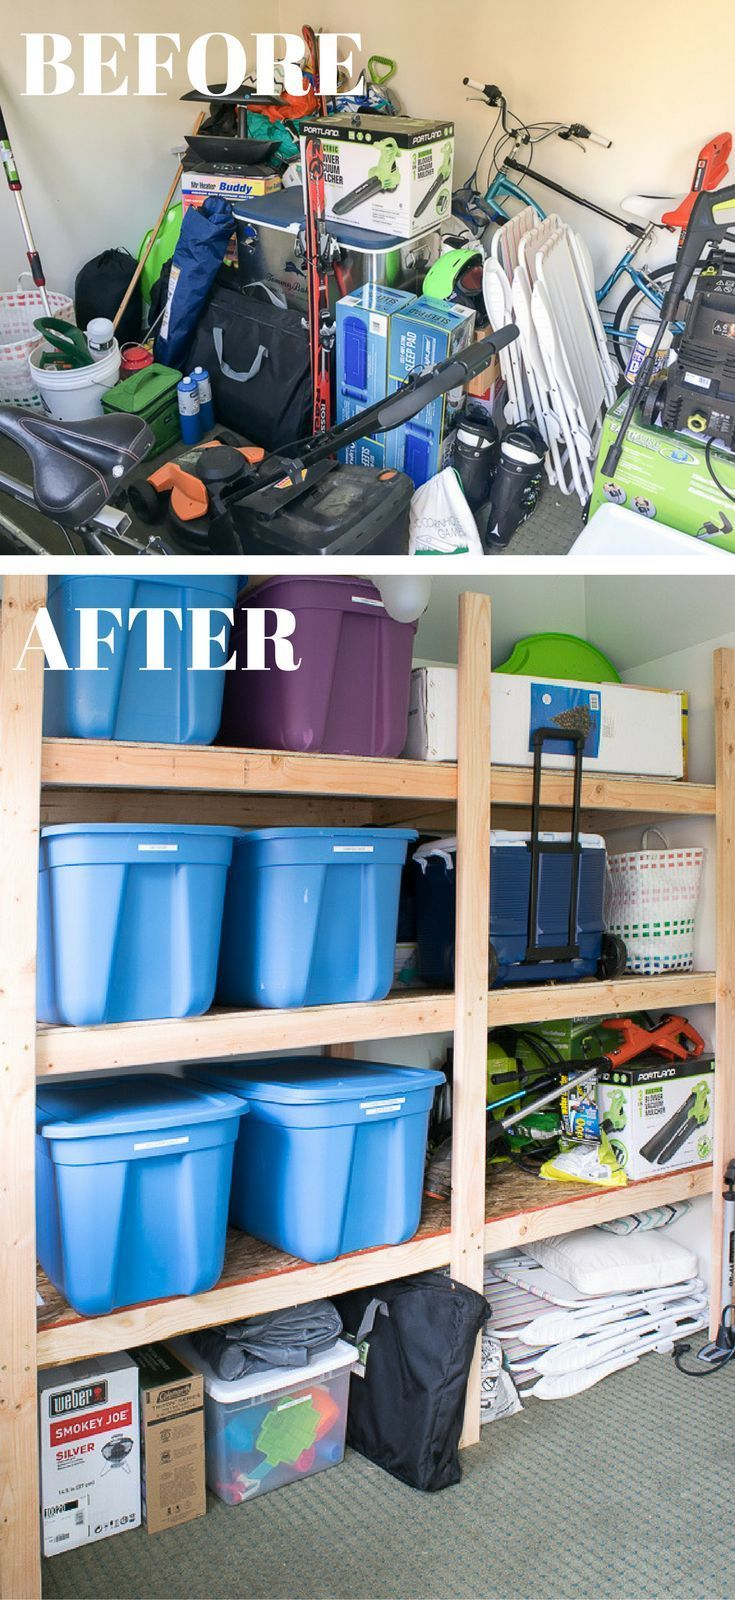 106 Best Images About Storage And Organization On: Best 25+ Shed Organization Ideas On Pinterest